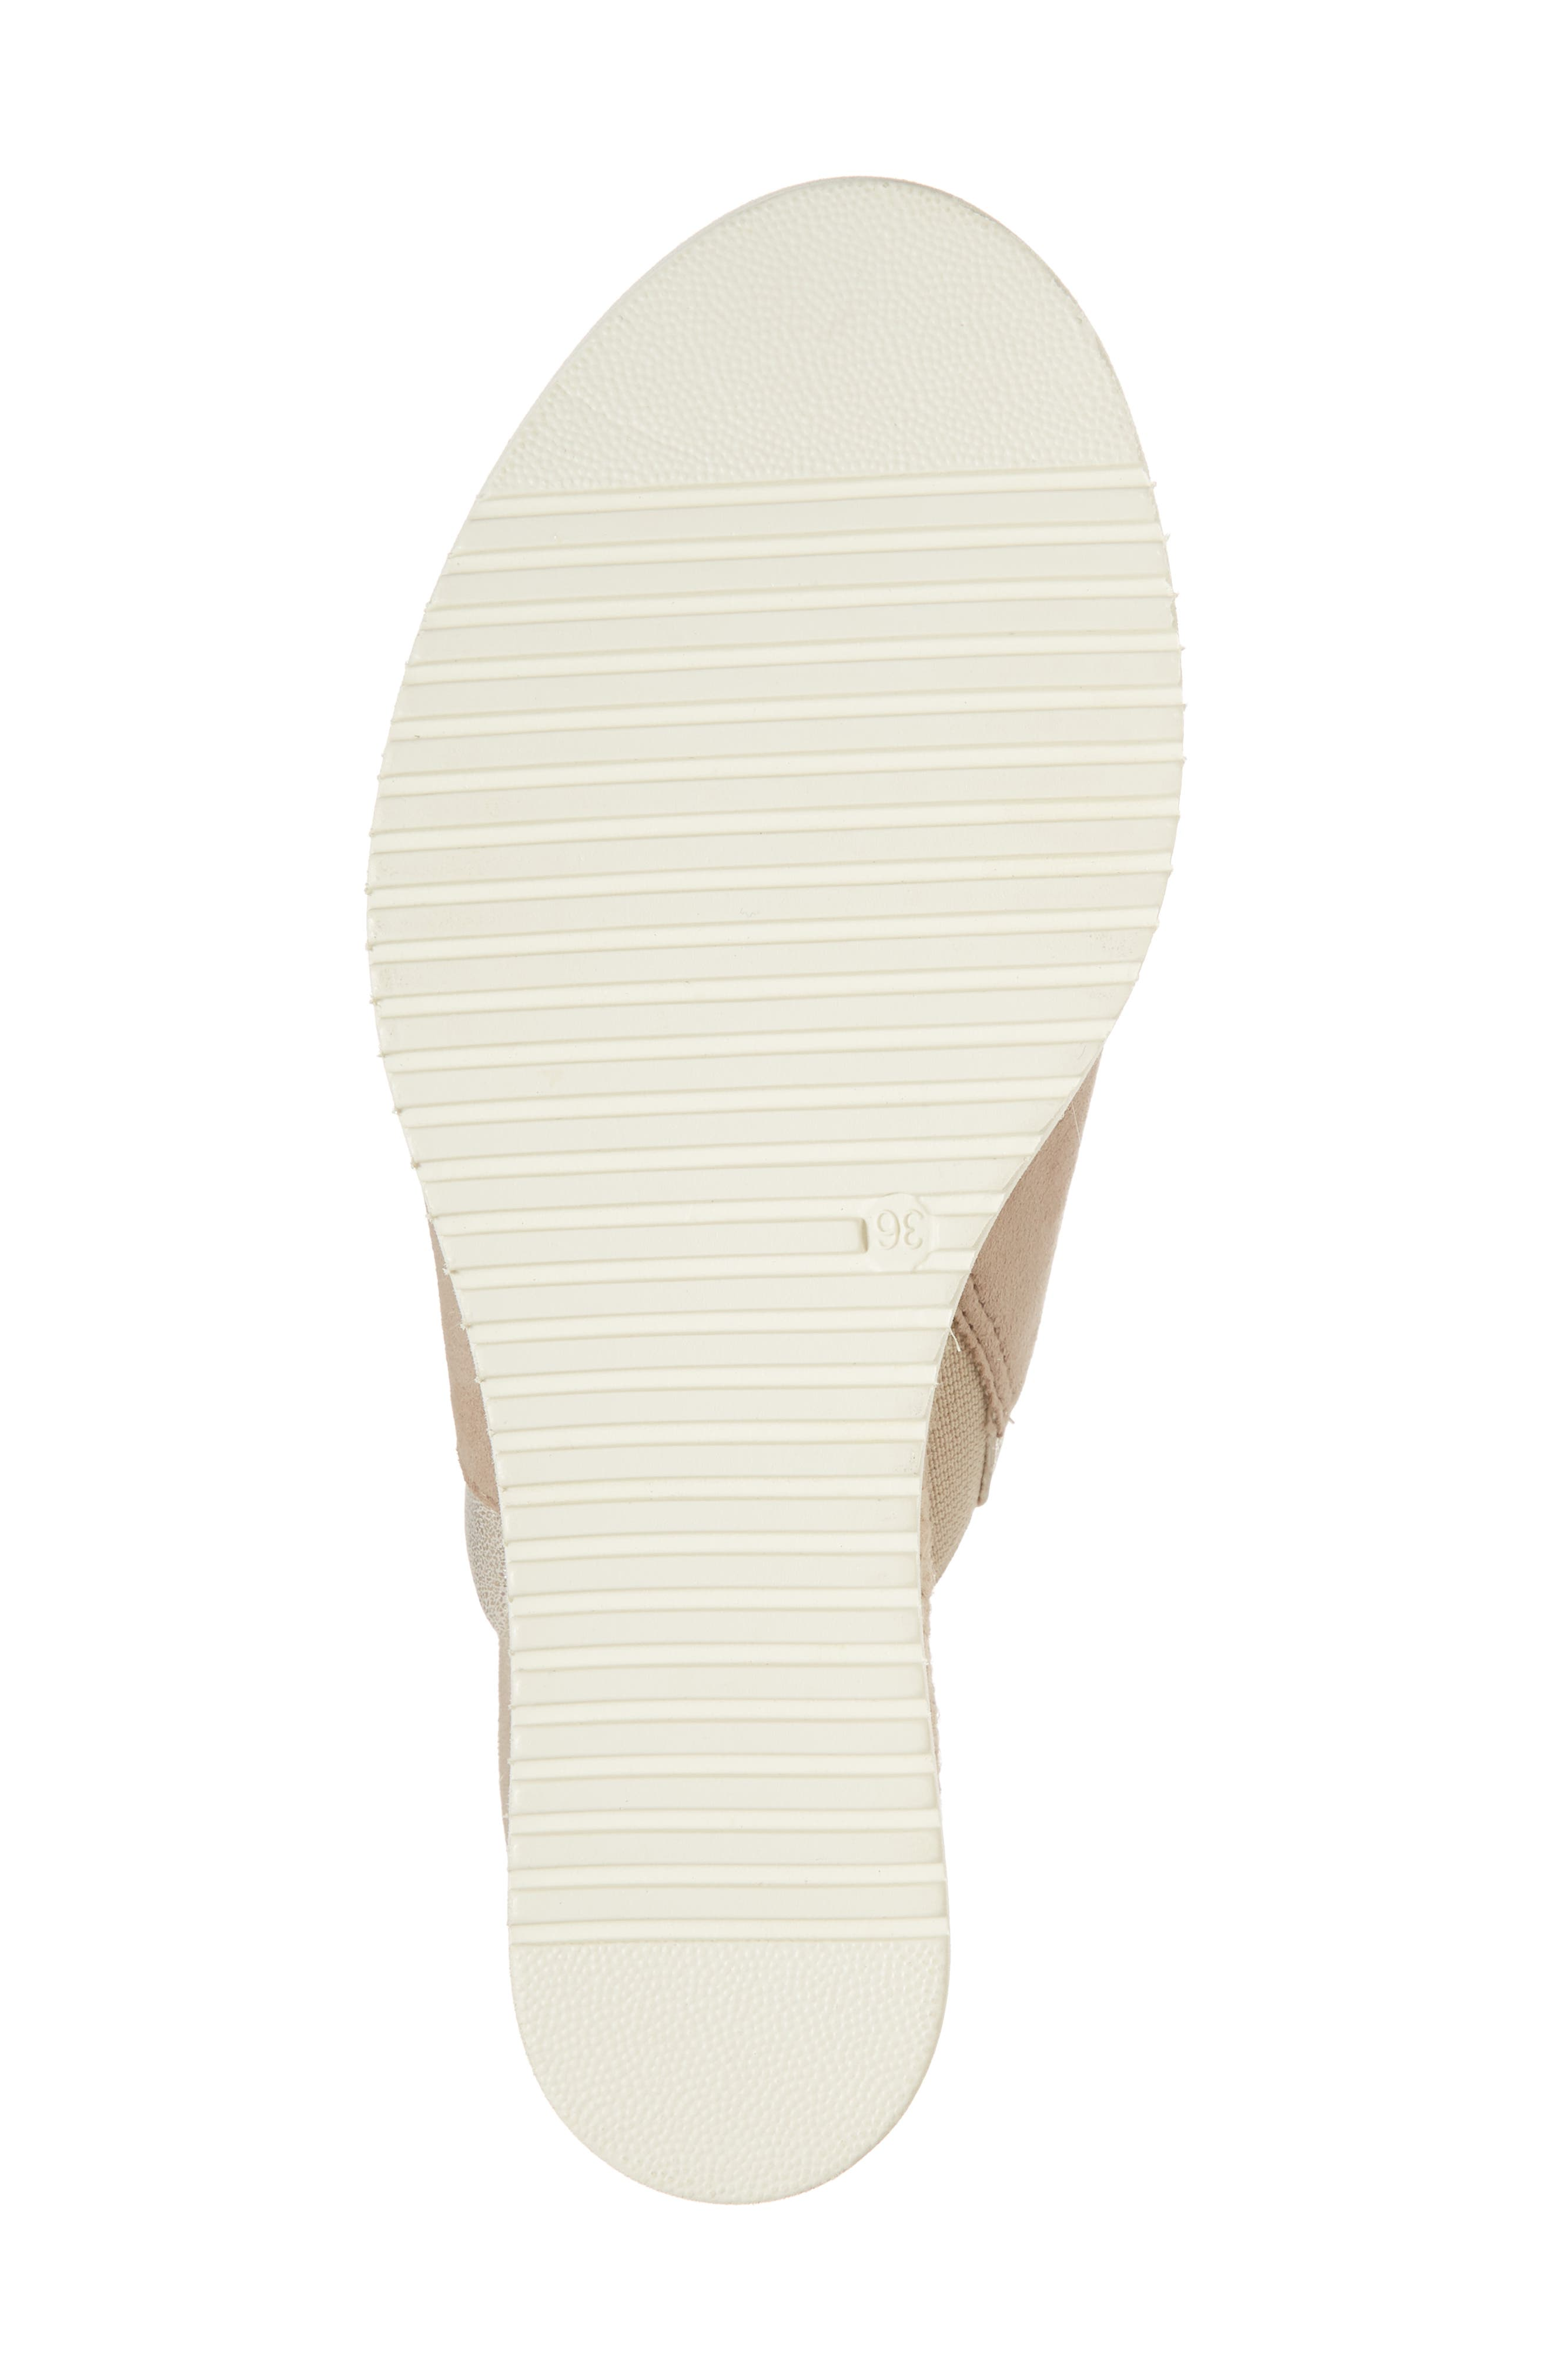 Alis Wedge Sandal,                             Alternate thumbnail 6, color,                             Shell Leather